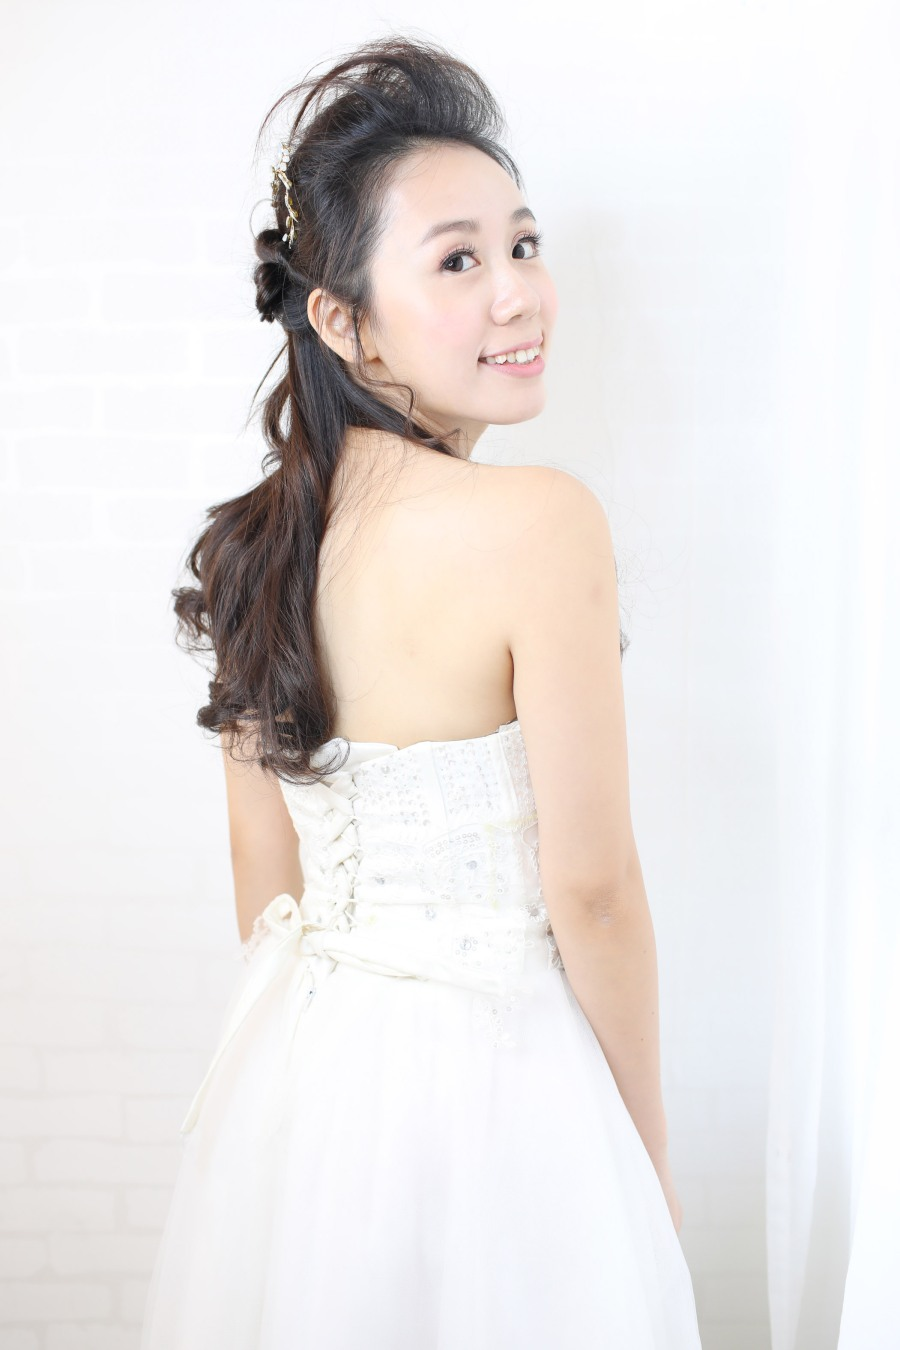 韓式新娘化妝髮型攝影_bridal_wedding_Korea_makeup_hairstyling_Top_MUA_paulstylist_photography_hk_stephanie-18